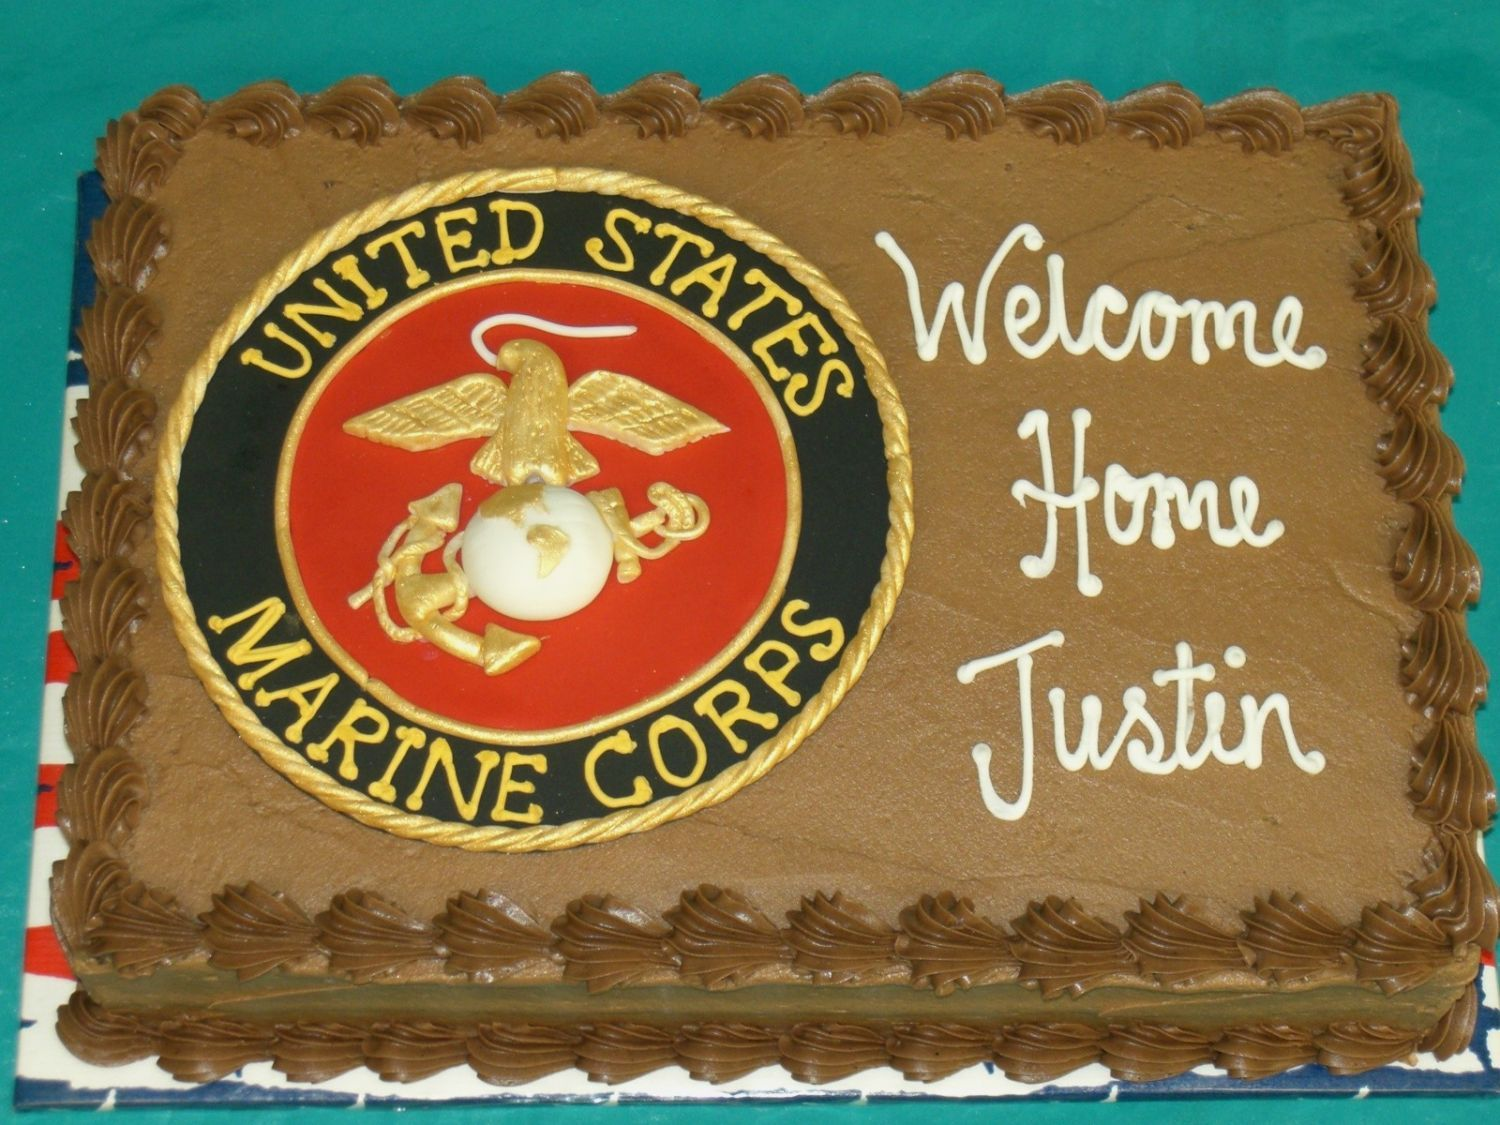 Best 25+ Welcome home cakes ideas on Pinterest | Welcome home ...